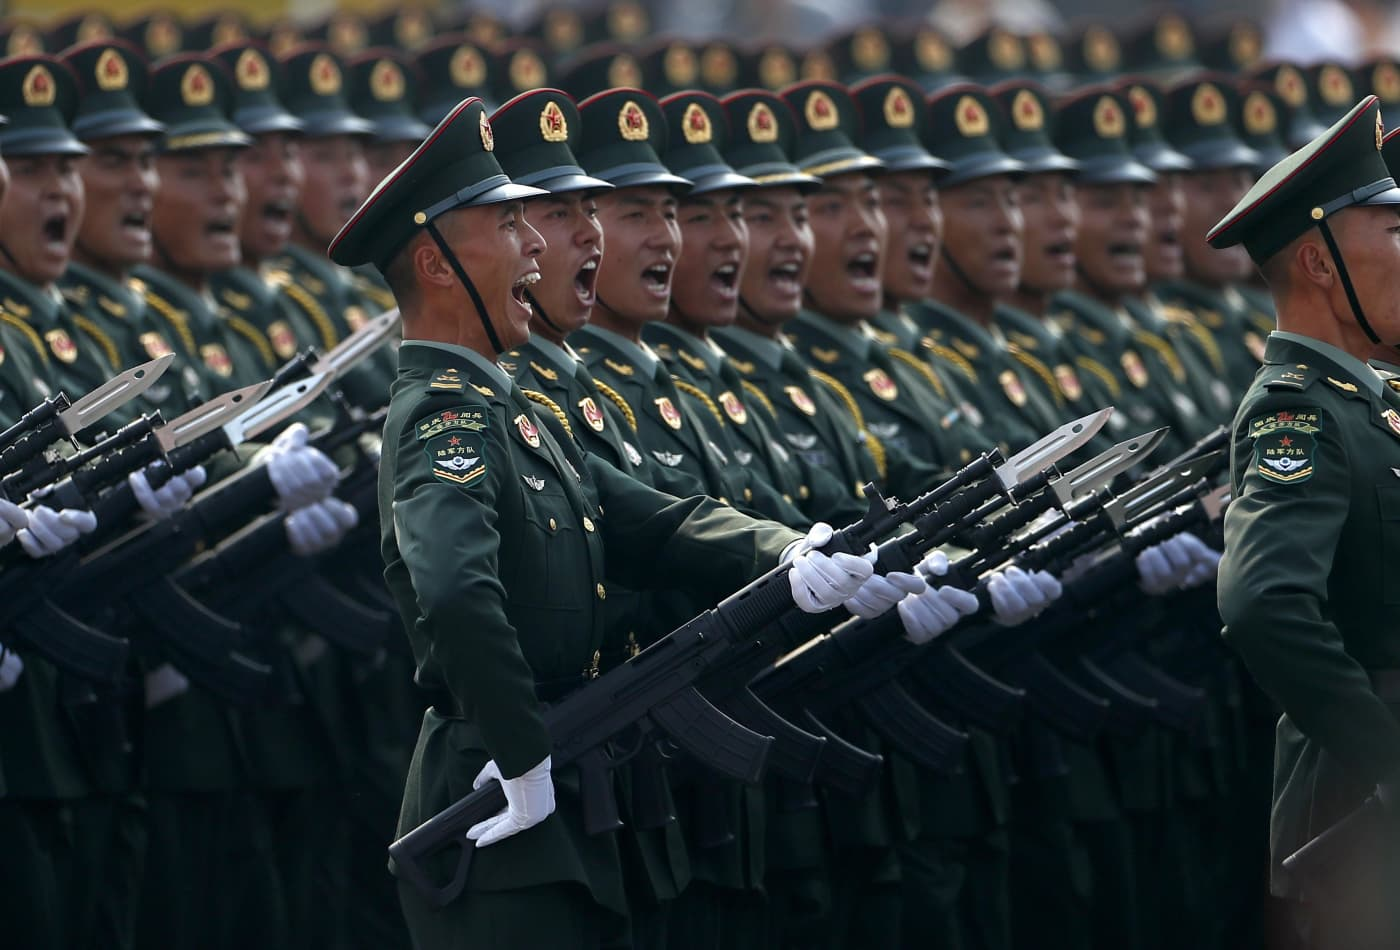 China has done human testing to create biologically enhanced super soldiers, says top U.S. official